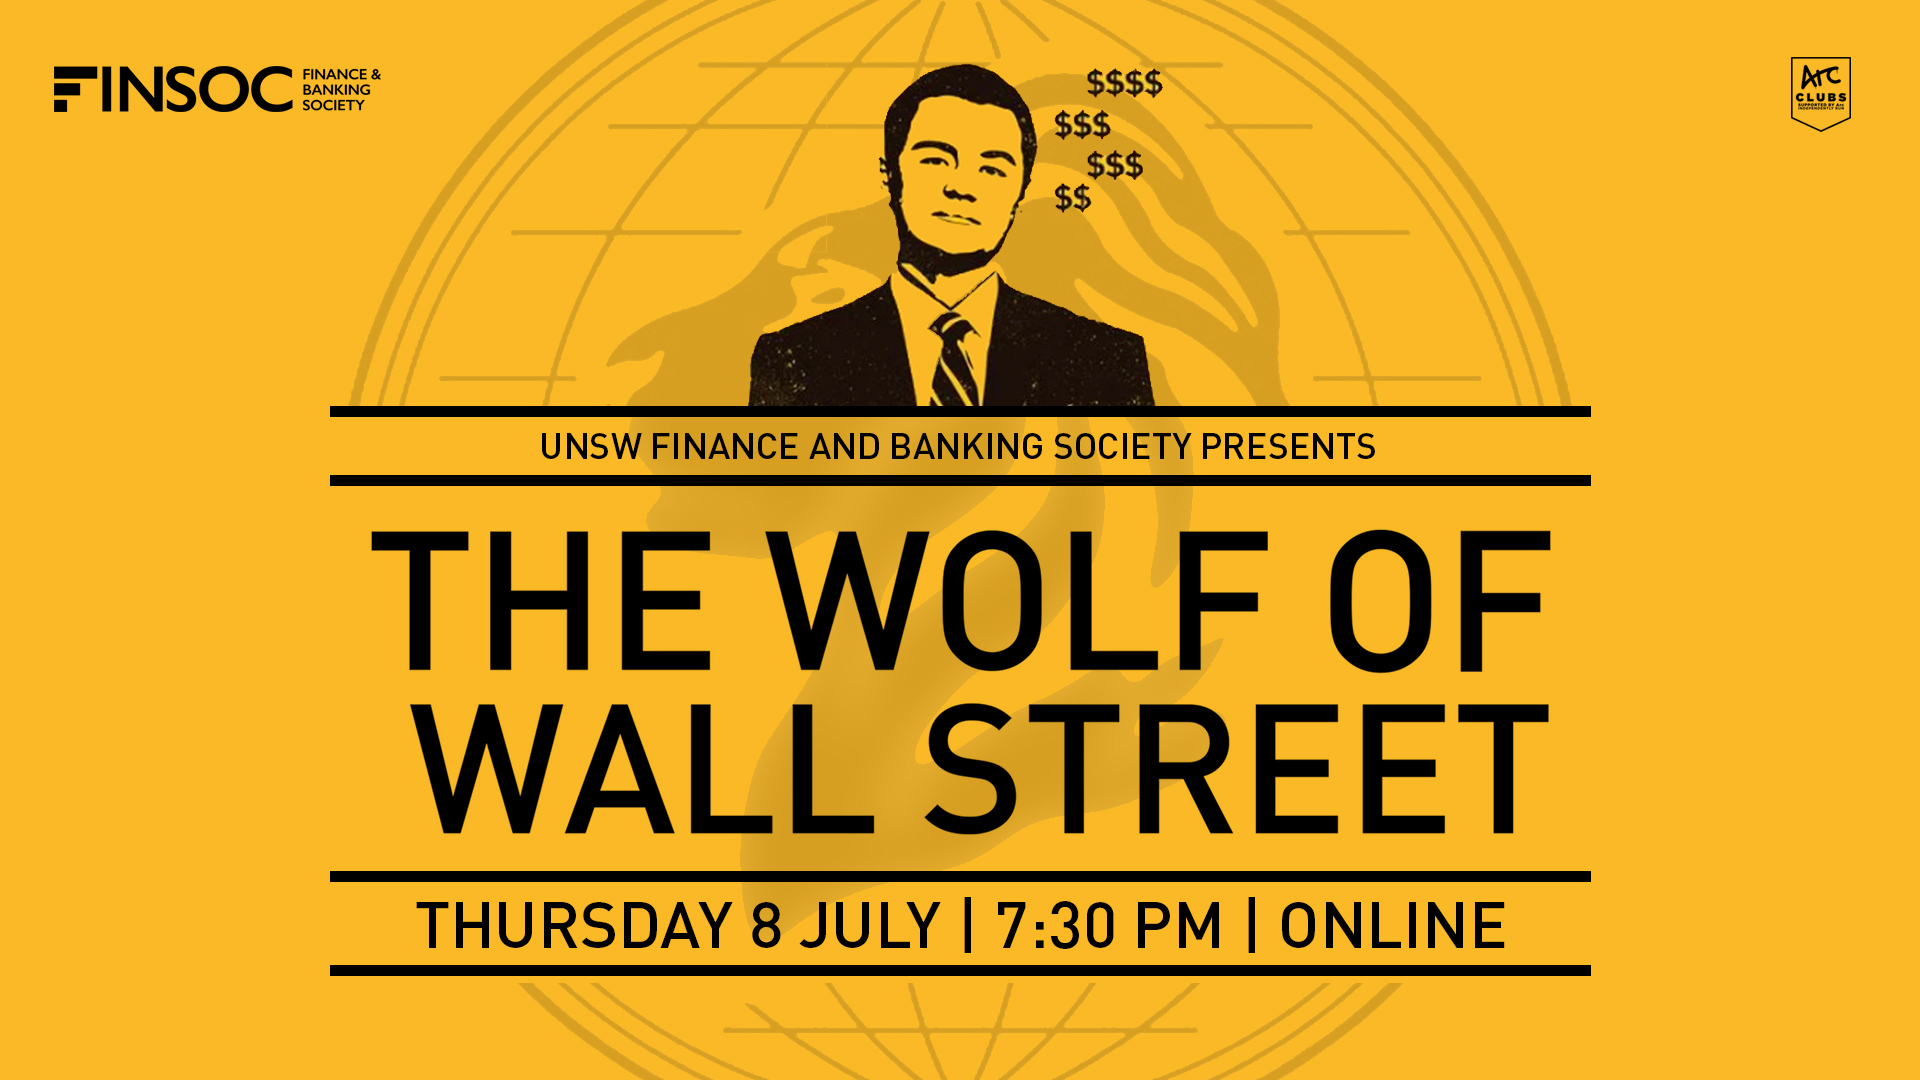 UNSW FINSOC Presents: The Wolf of Wall Street